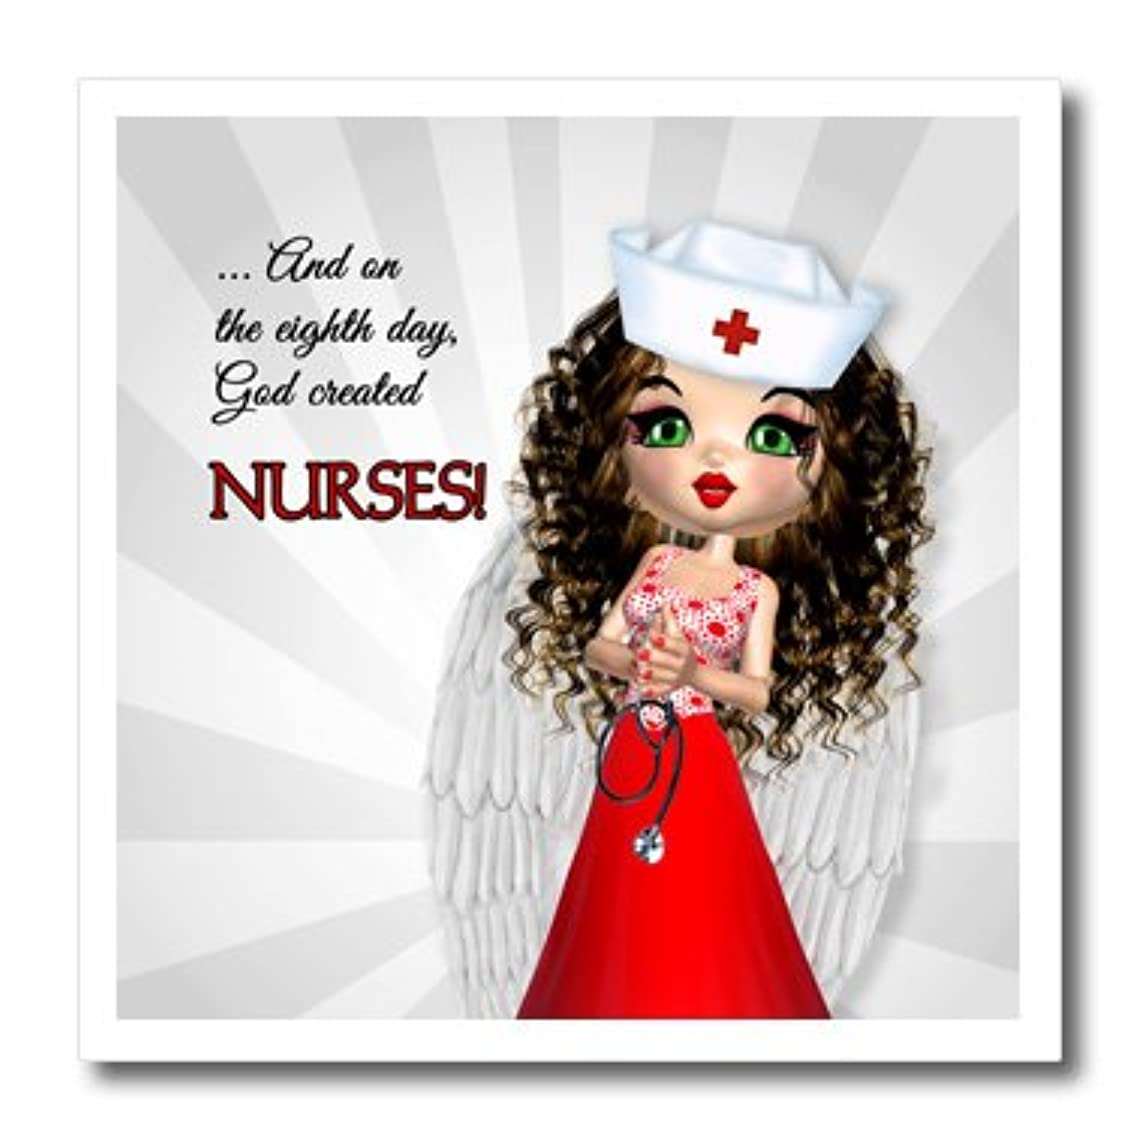 3dRose ht_127617_3 and on The Eighth Day God Created Nurses, Nurse Has Angel Wings Iron on Heat Transfer, 10 by 10-Inch, for White Material